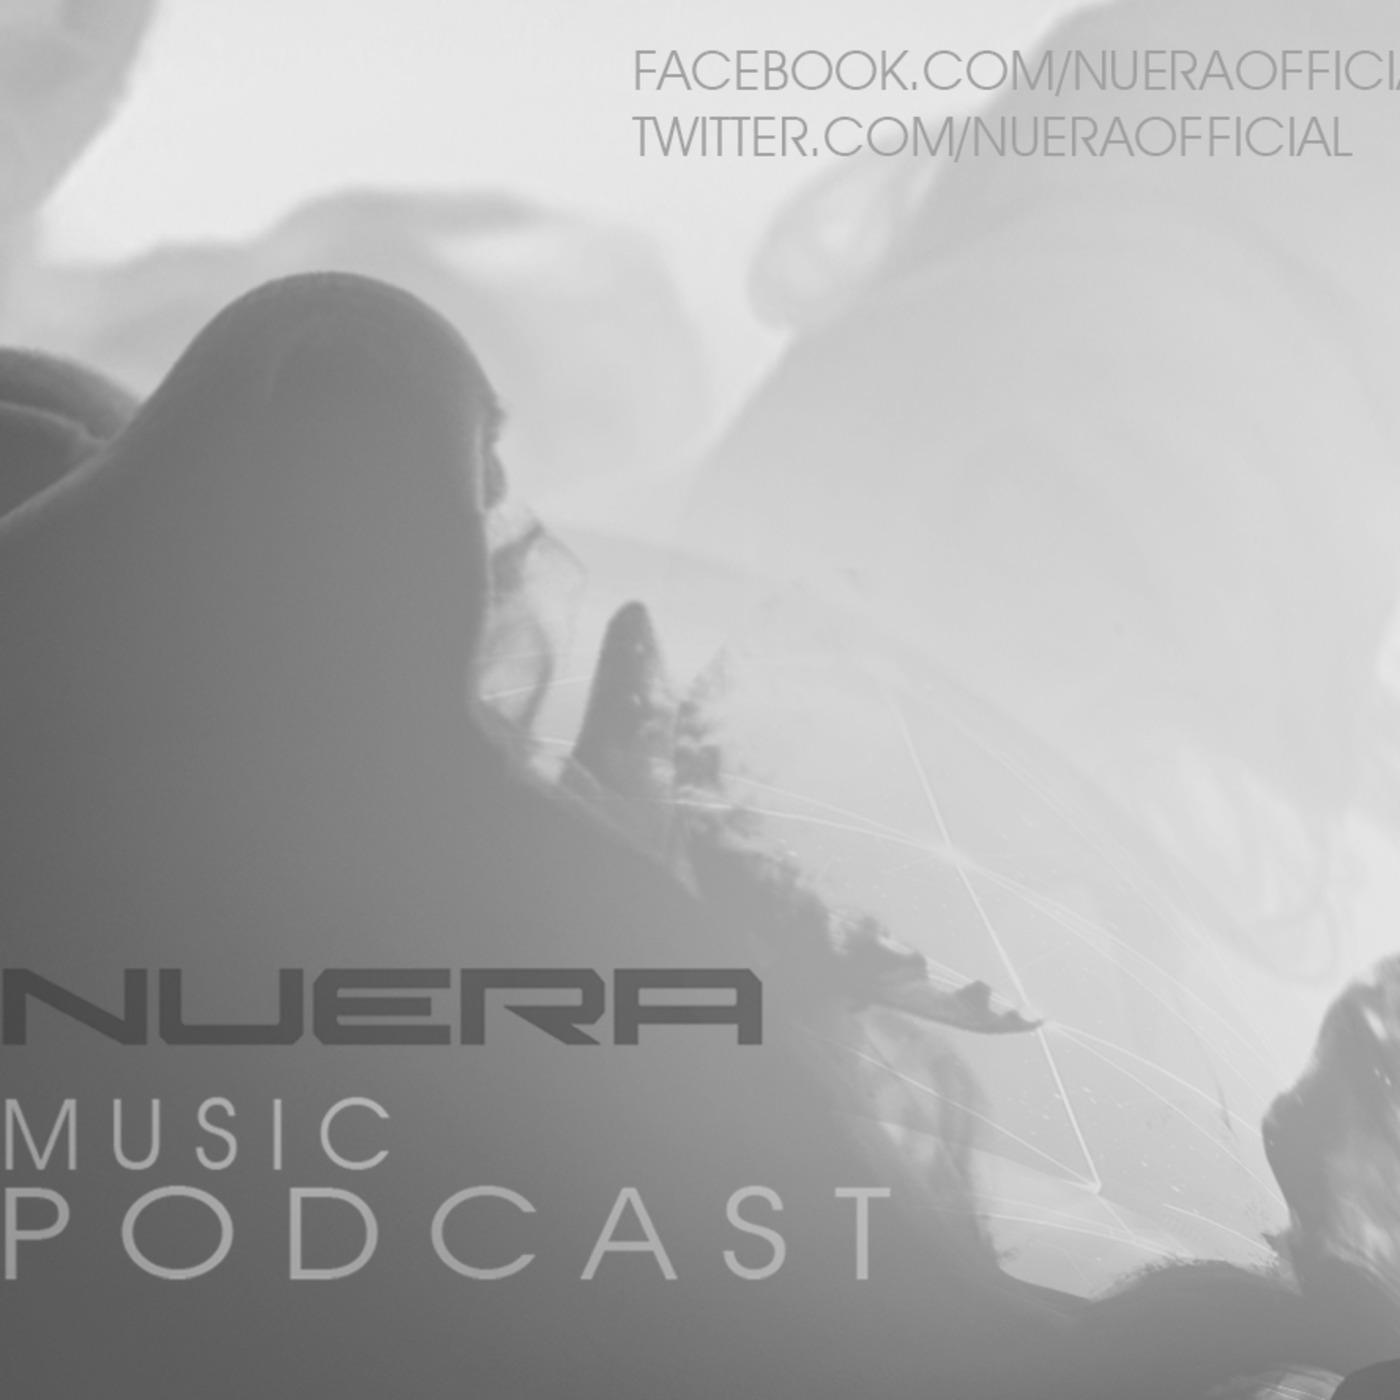 Nuera Music Podcast